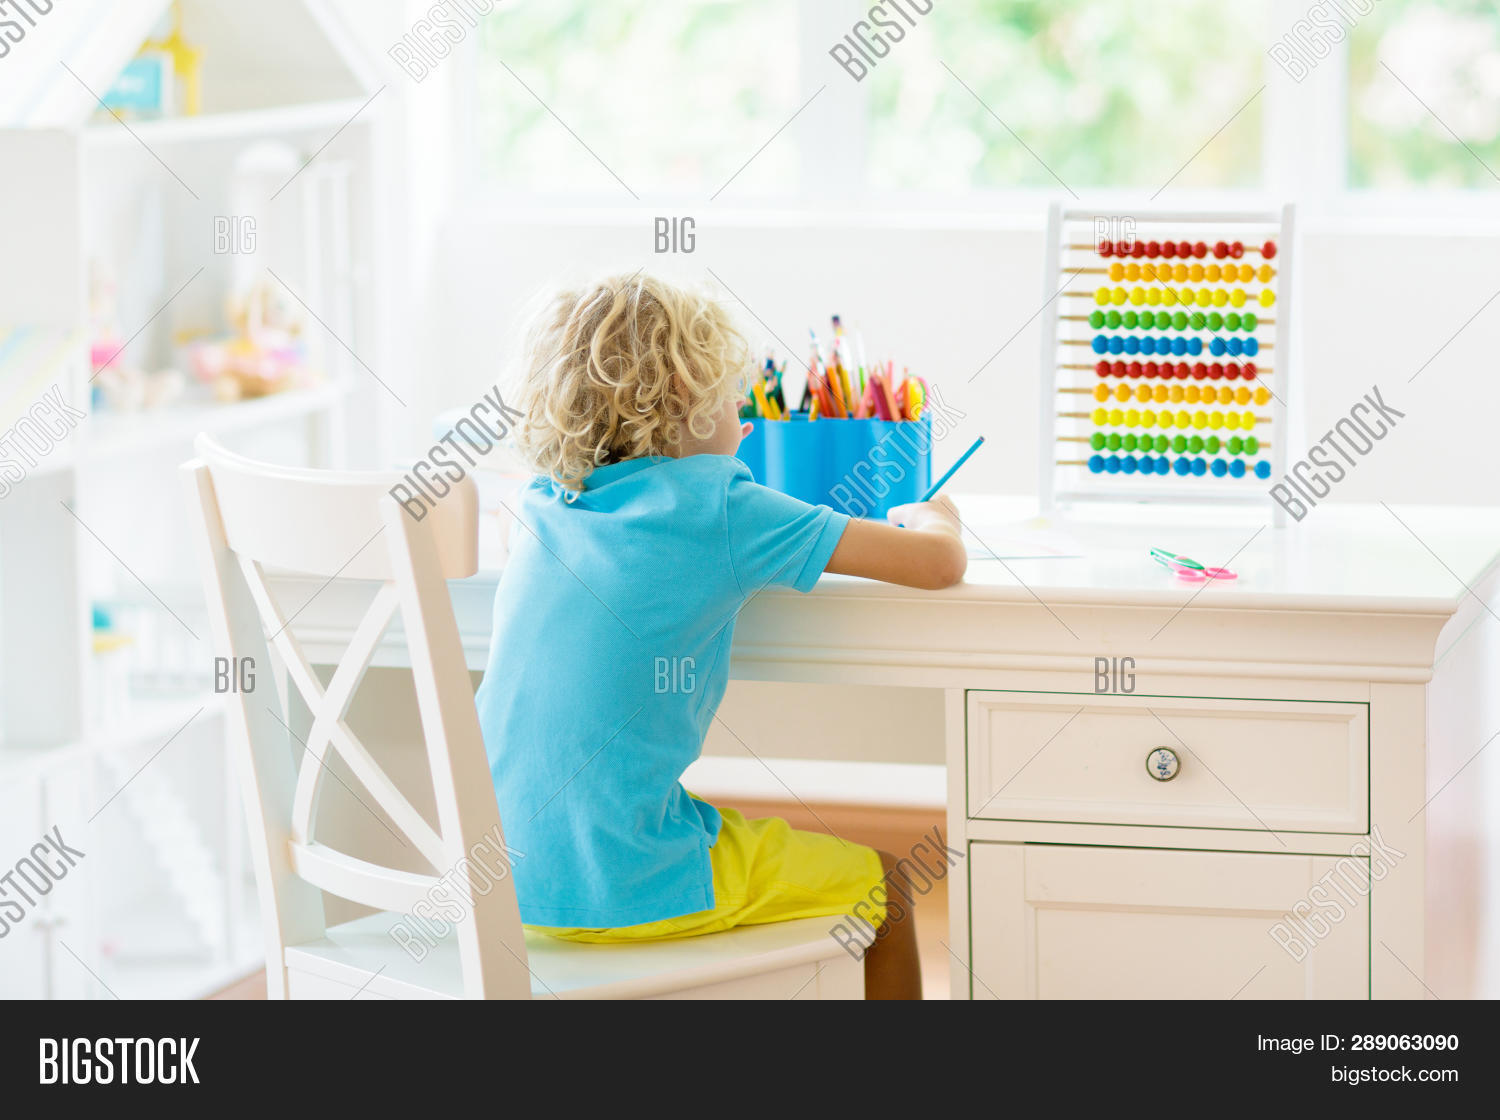 Sensational Child Drawing Kids Image Photo Free Trial Bigstock Beutiful Home Inspiration Ommitmahrainfo